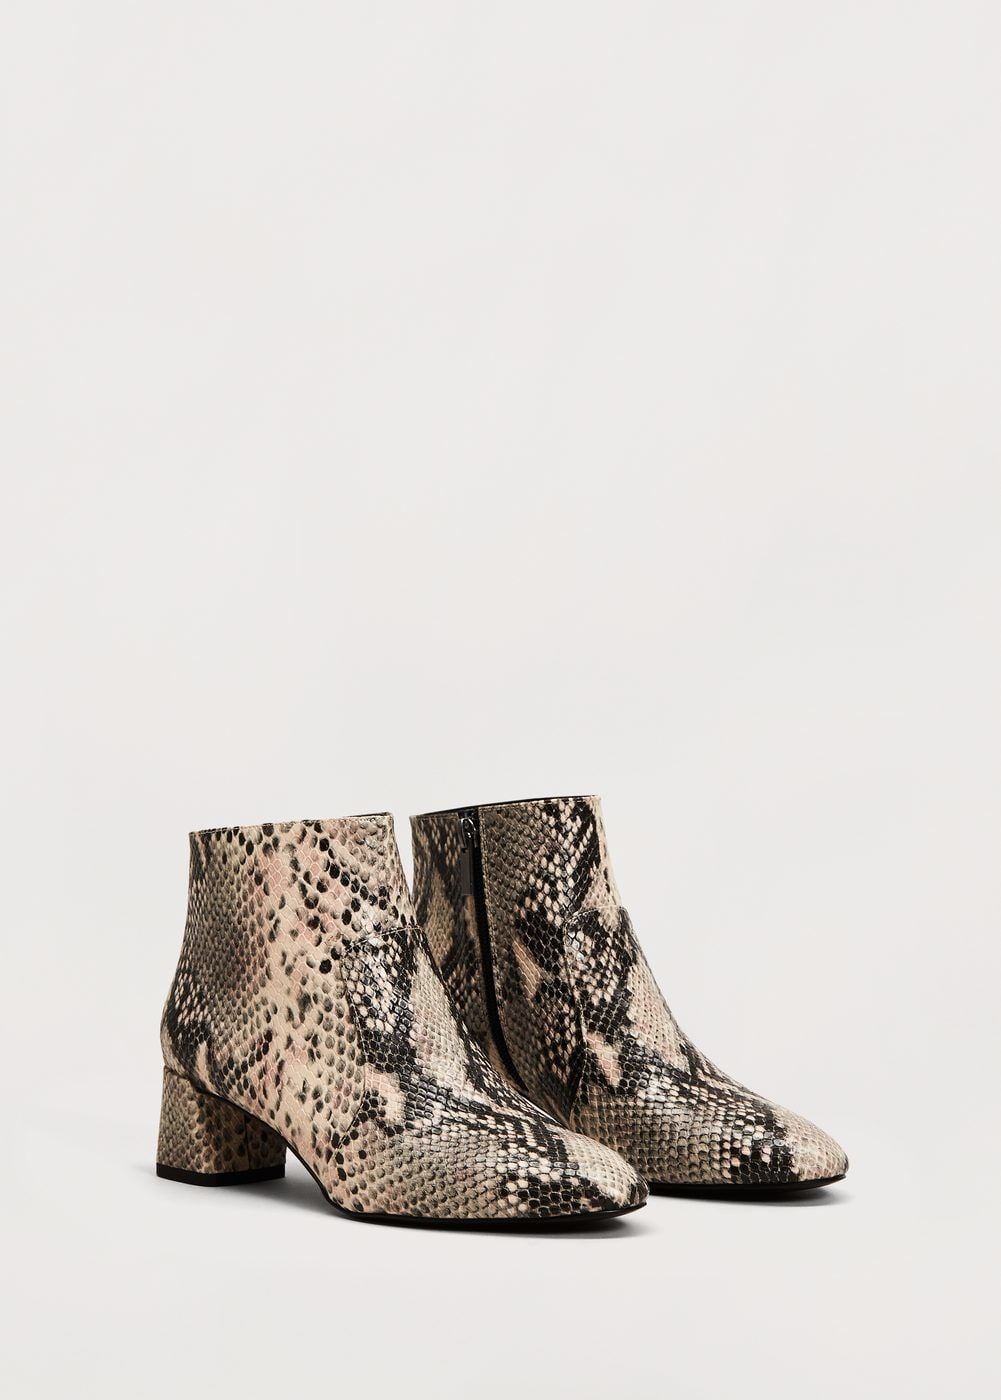 Snake-effect ankle boots - Cardigans and sweaters Plus sizes   Violeta by  MANGO USA 8a6f9257a056